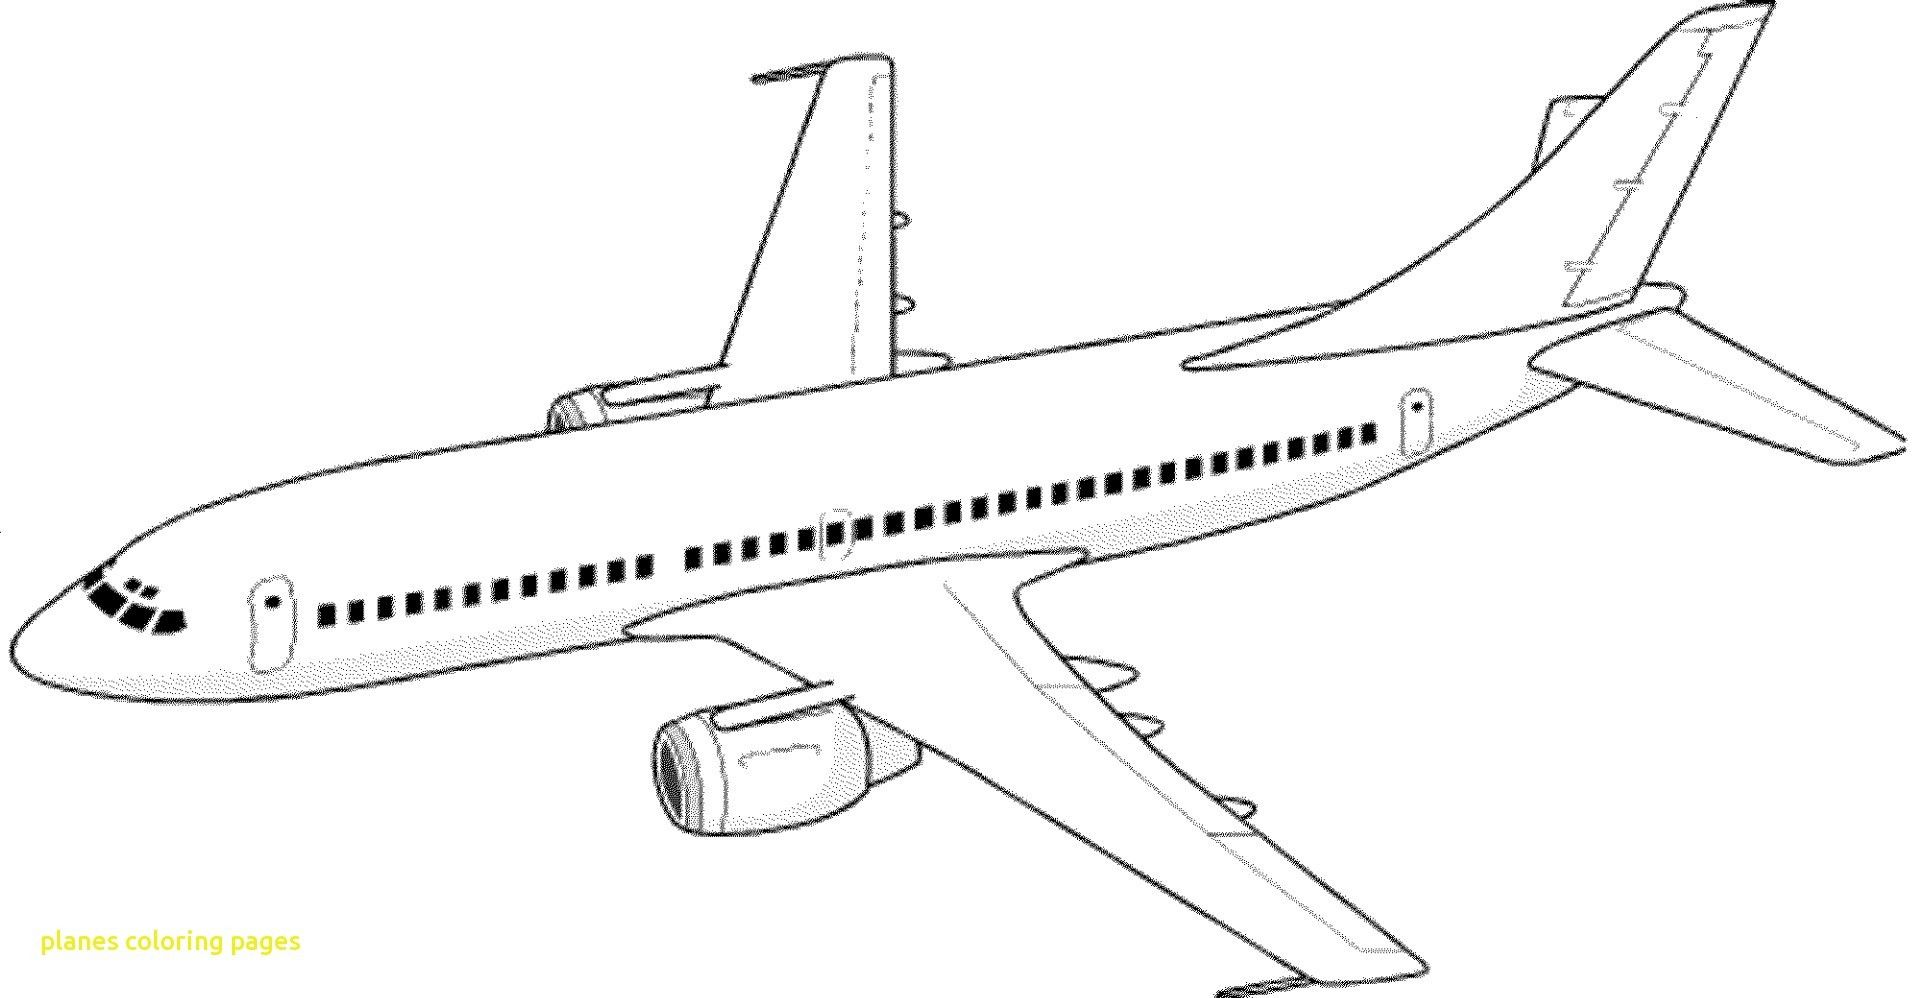 Jet Coloring Pages Energy Blue Angel Jet Coloring Pages Planes With Aeroplane Colouring Entitlementtrap Com Airplane Coloring Pages Coloring Pages To Print Printable Pictures